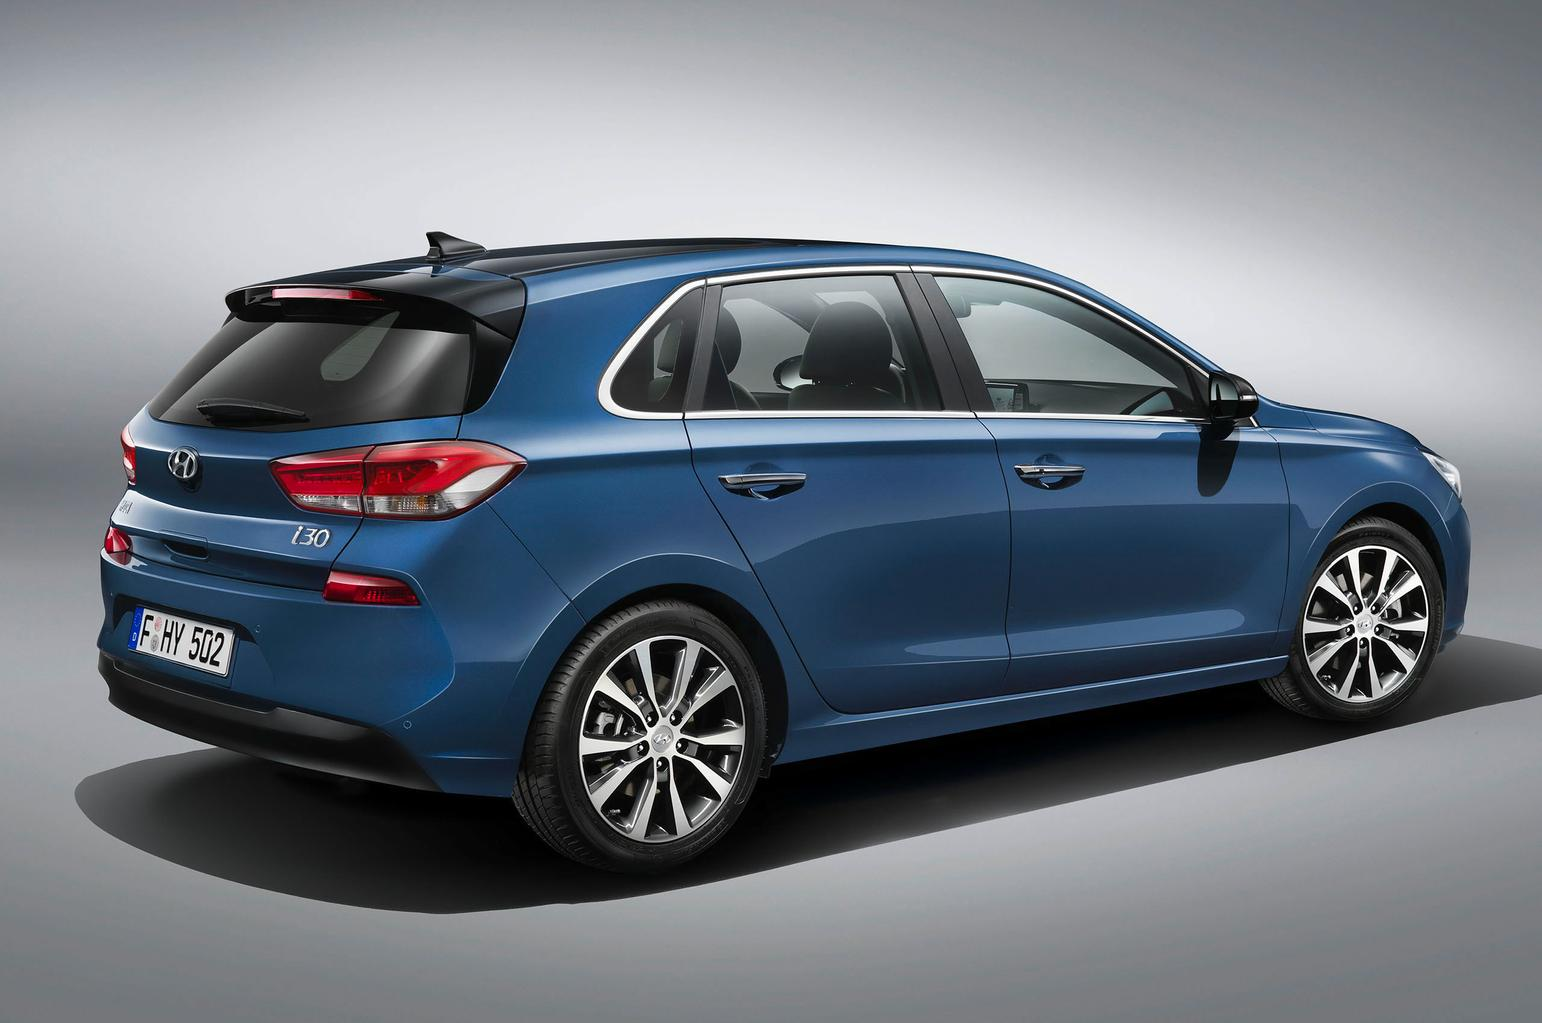 New Hyundai i30 to cost from £16,995